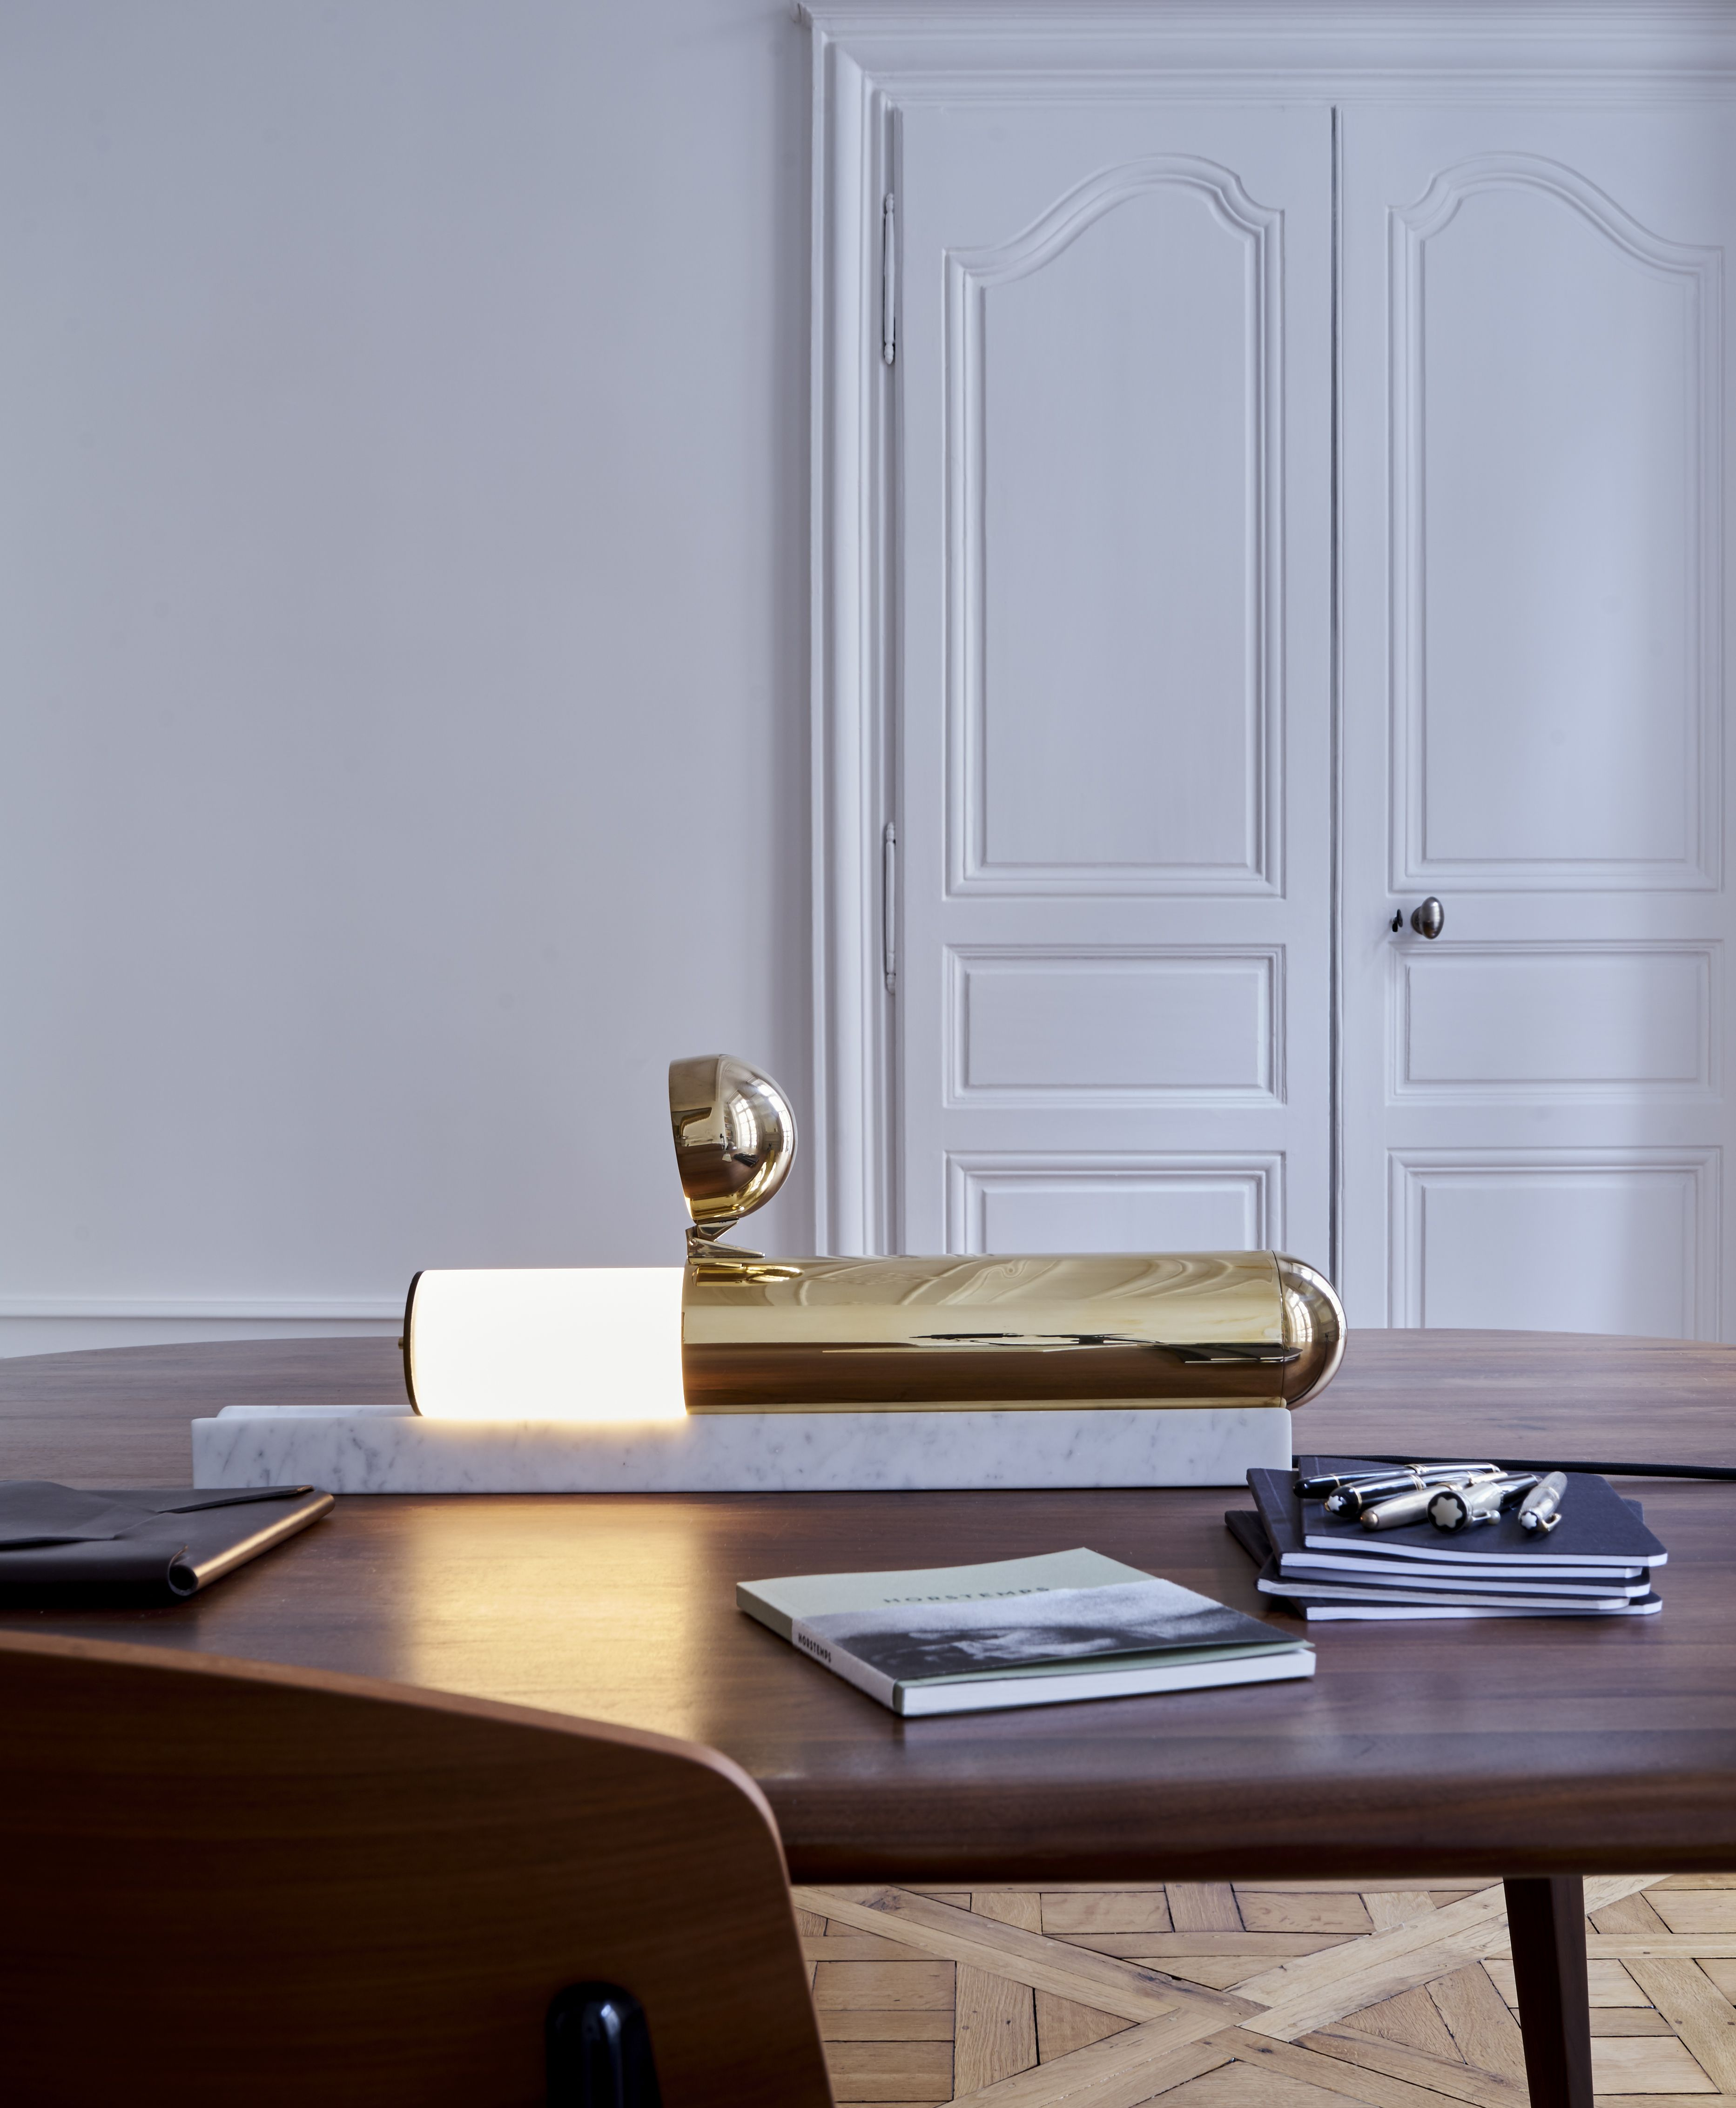 ISP Table Lamp, Made Of Brass And White Marble, Is Designed By Ilia Potemine